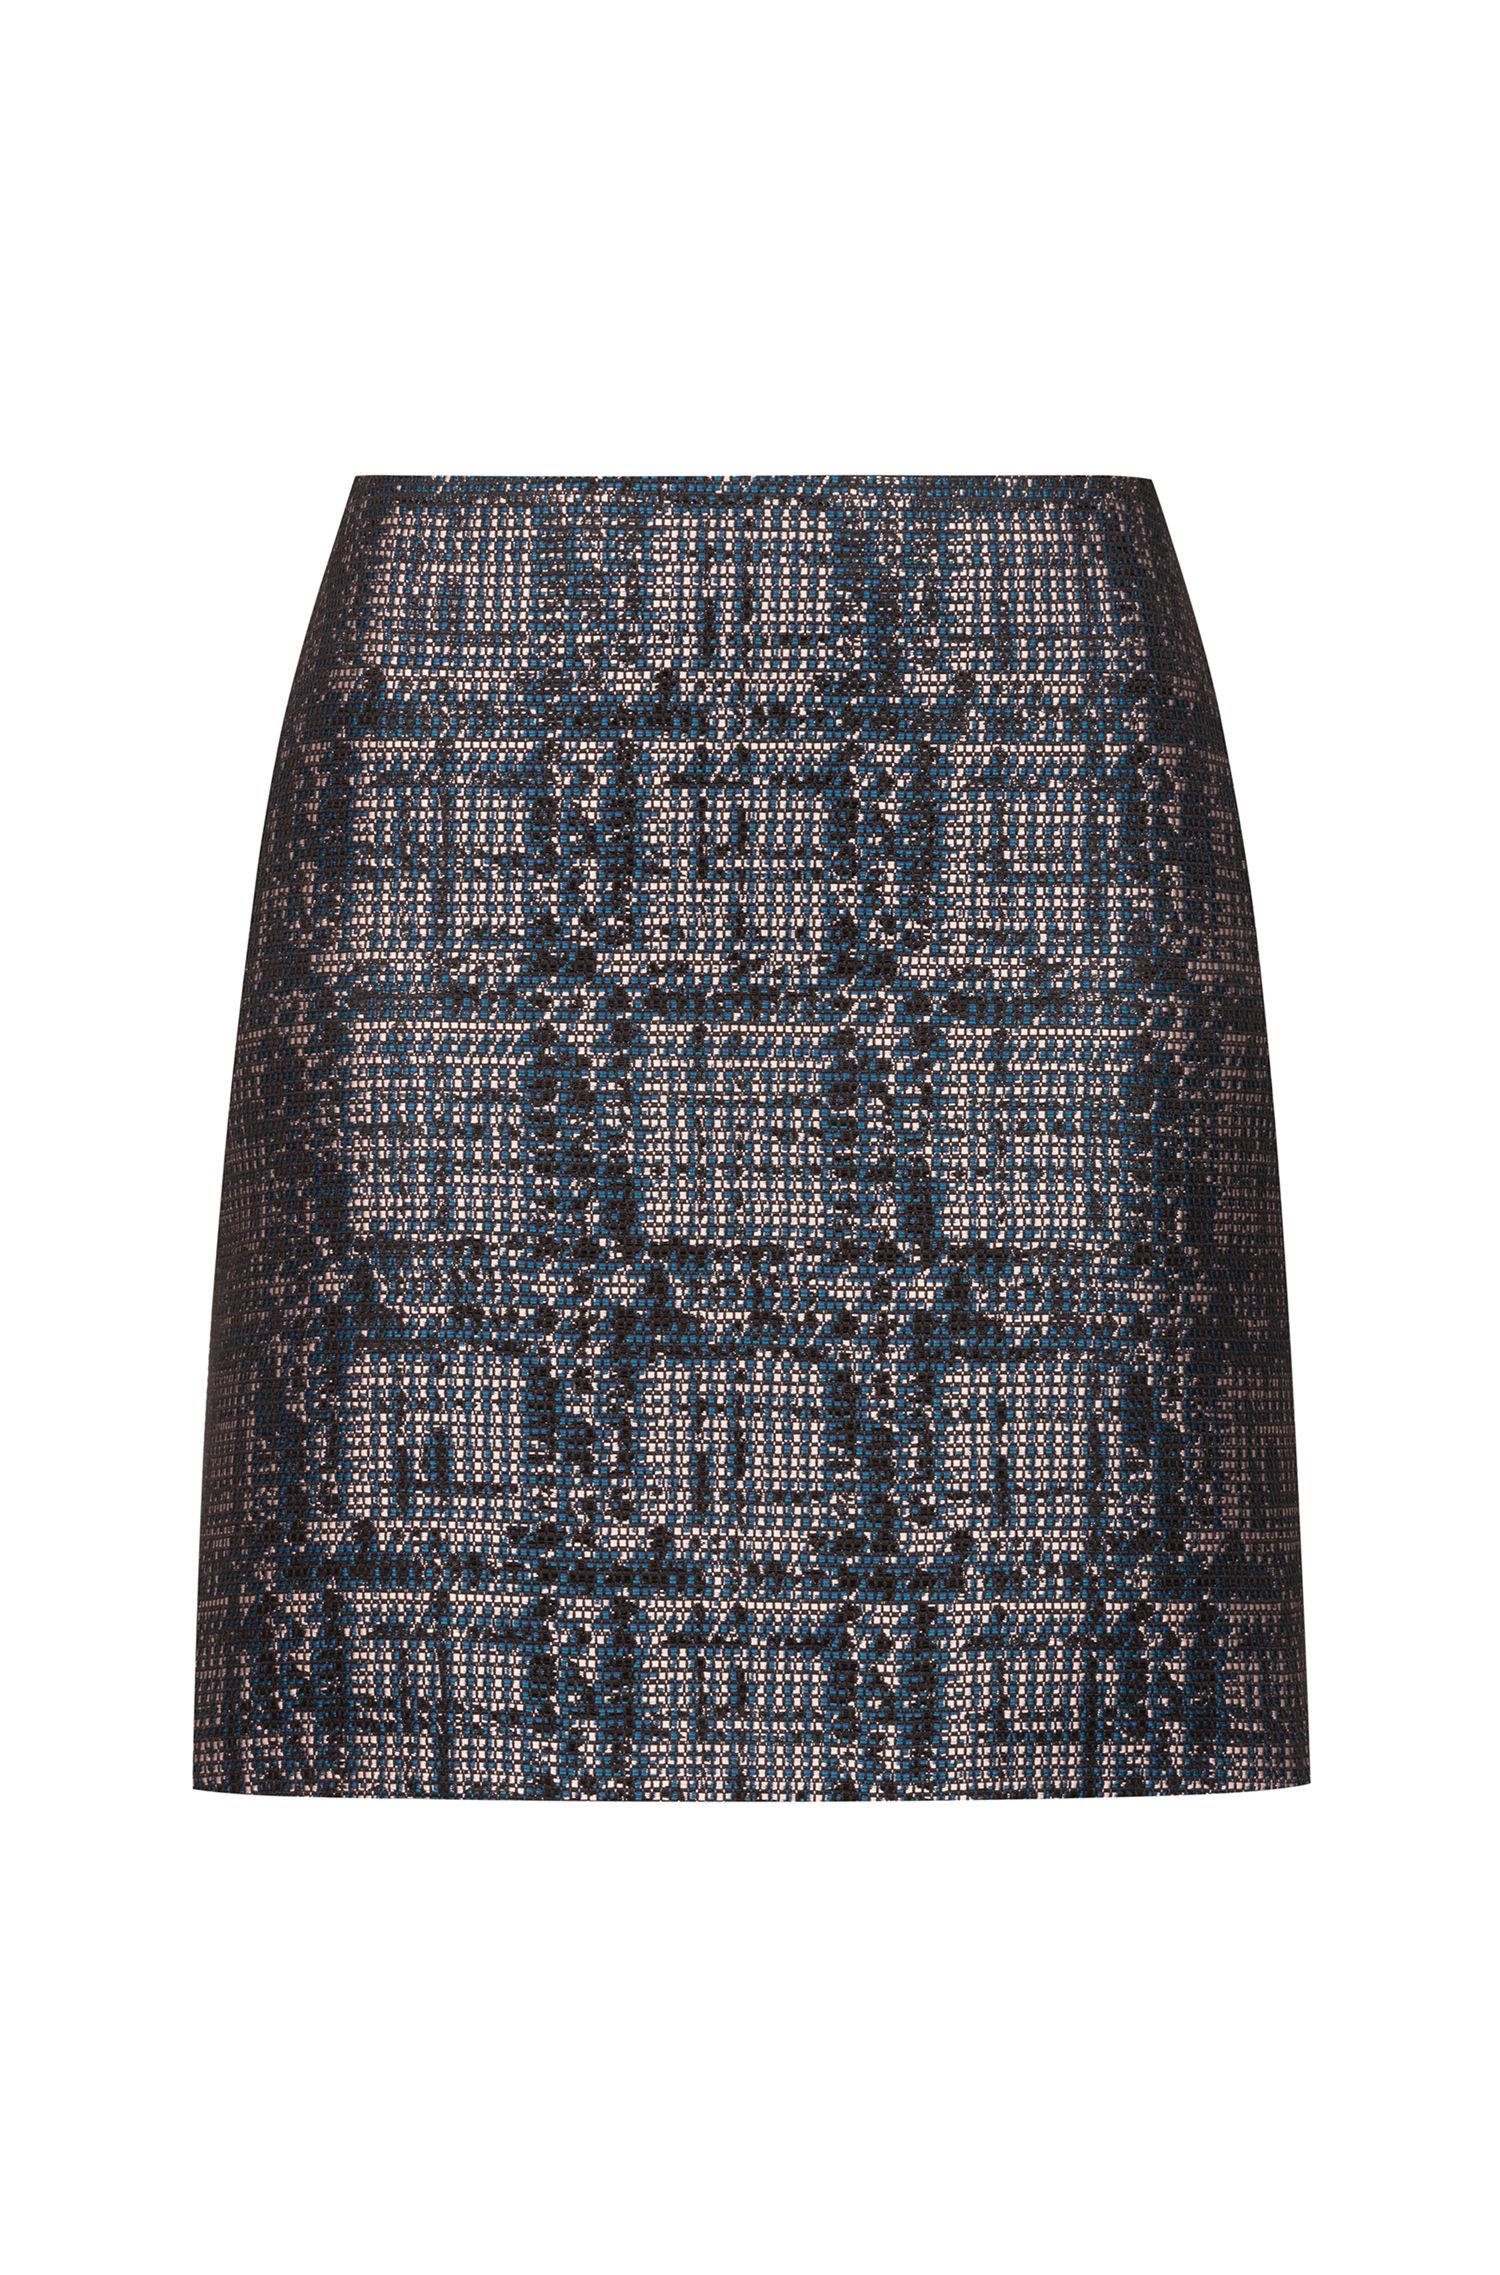 Slim-fit mini skirt in tweed with metallised accents, Patterned